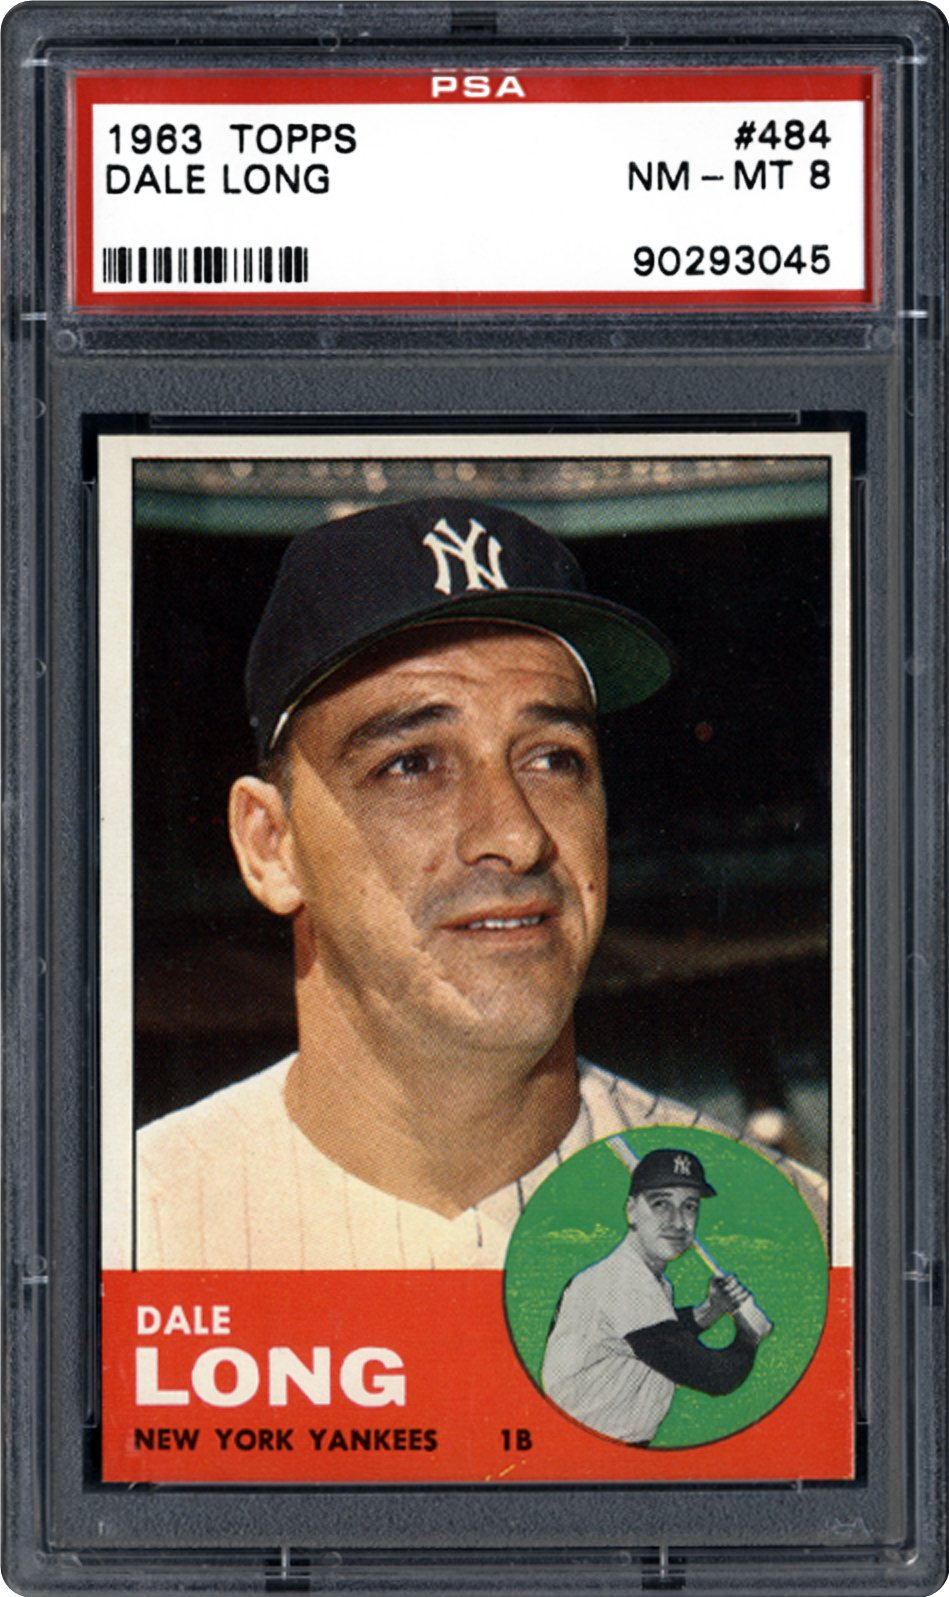 1963 Topps Dale Long Psa Cardfacts